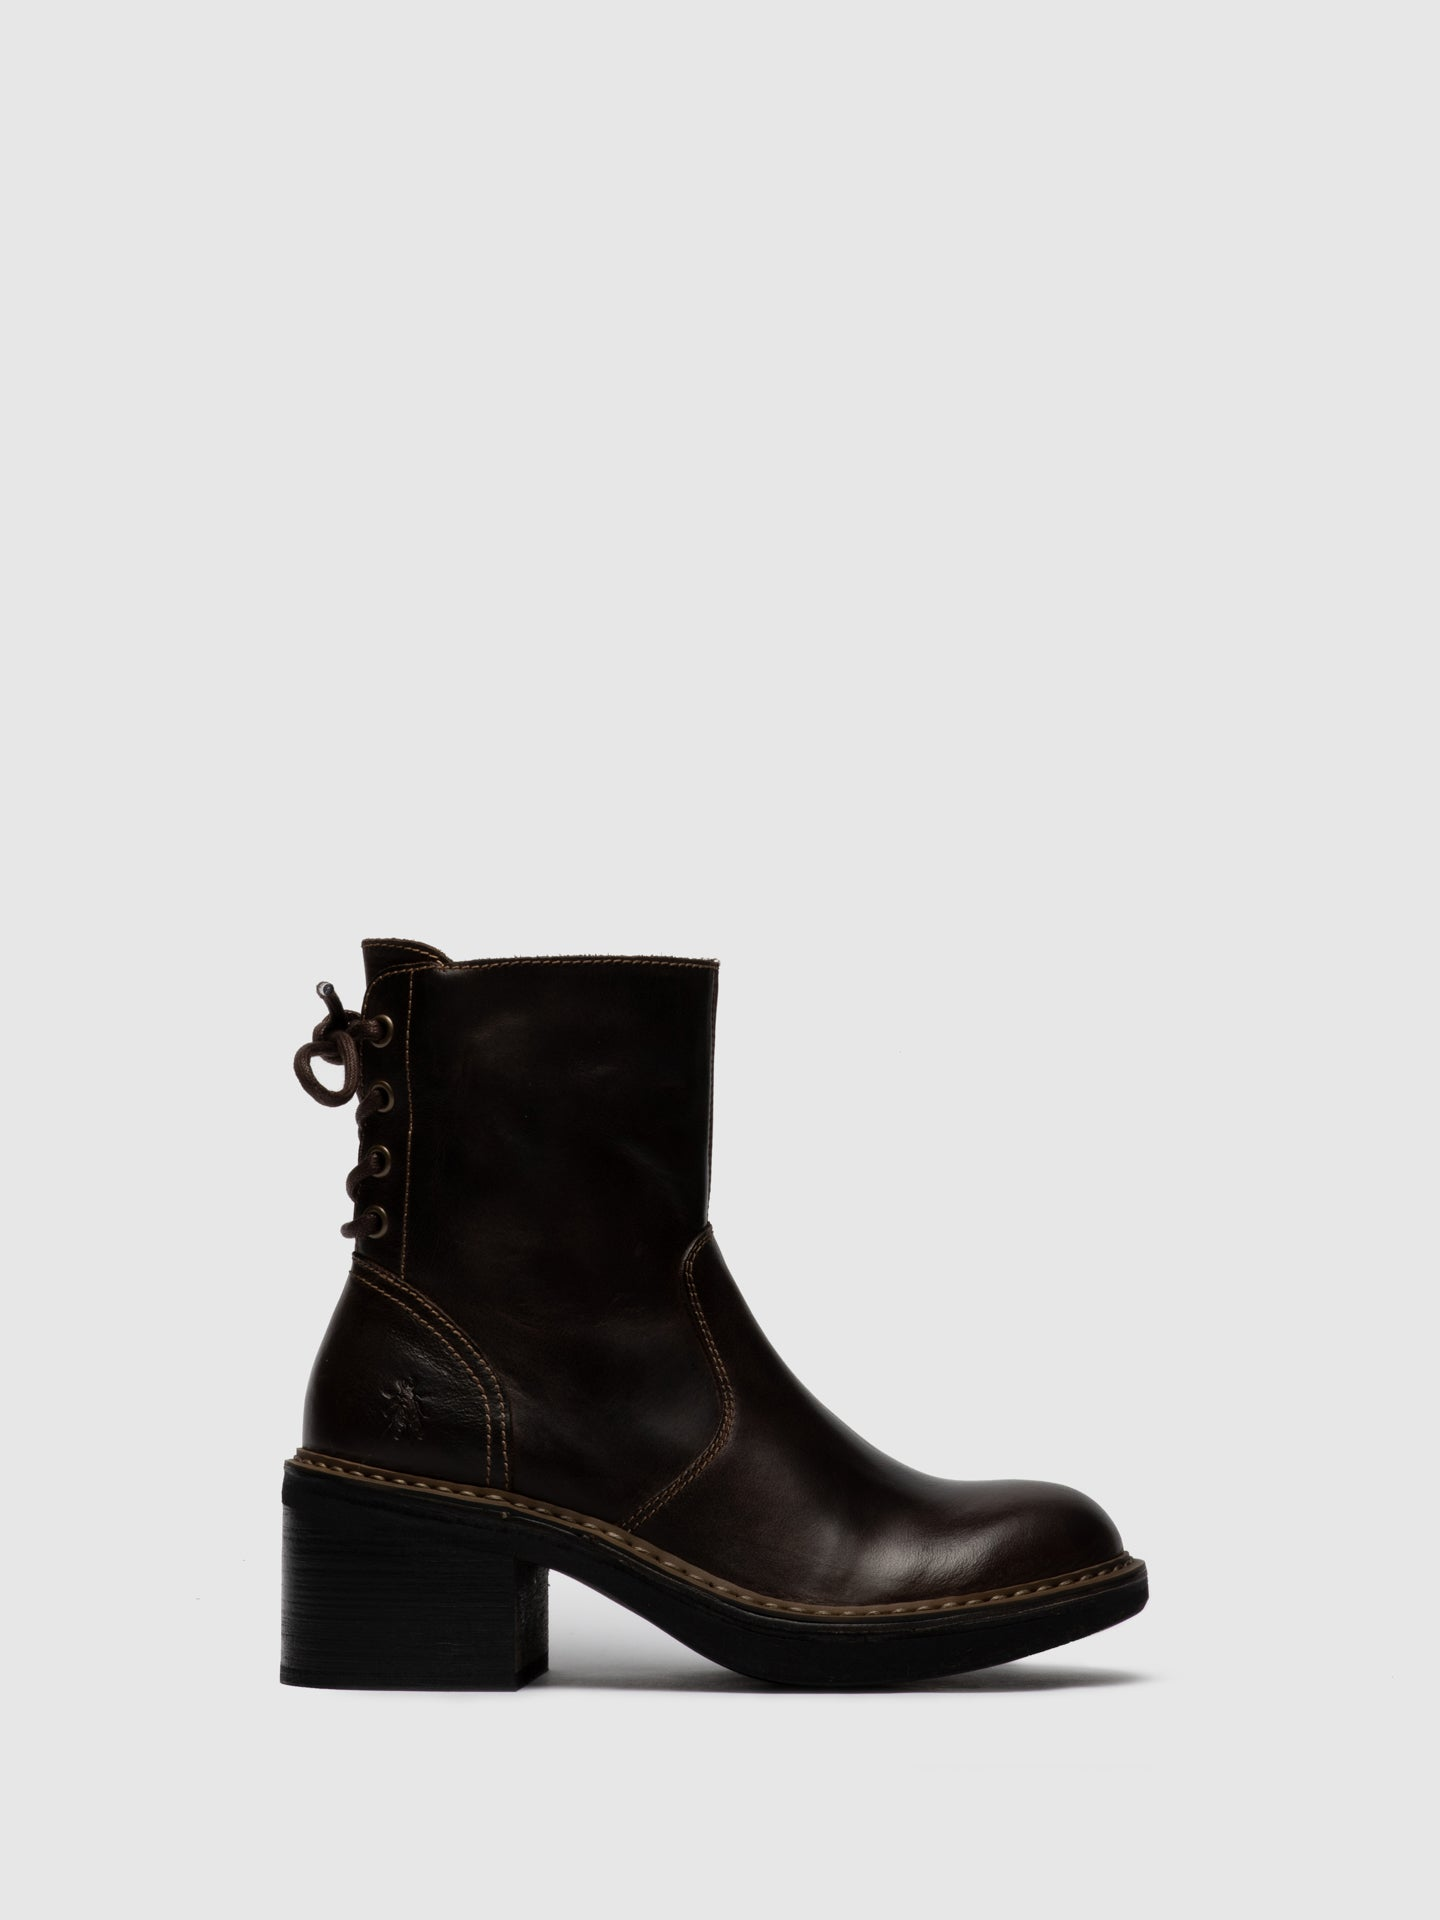 Fly London Lace-up Ankle Boots ERIC049FLY RUG DK. BROWN